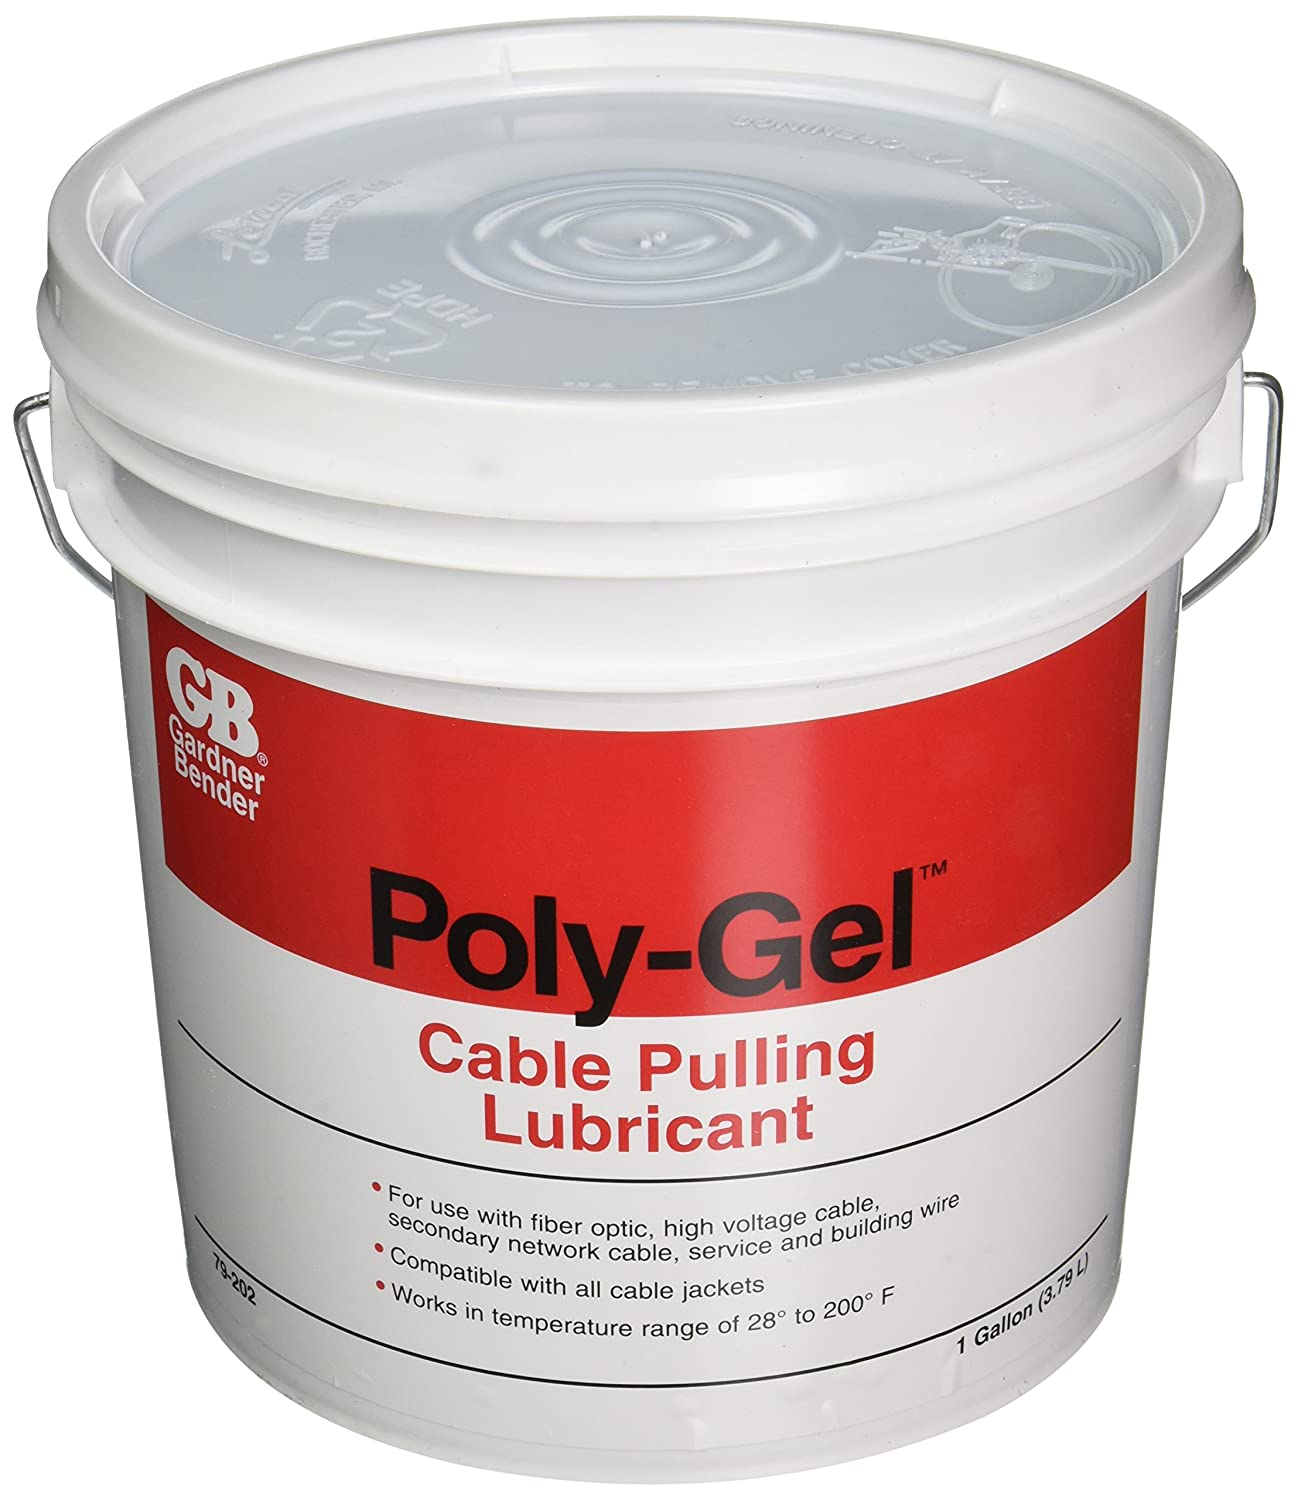 Amazon.com: Gardner Bender 79-202 Poly-Gel Cable Pulling Lubricant ...